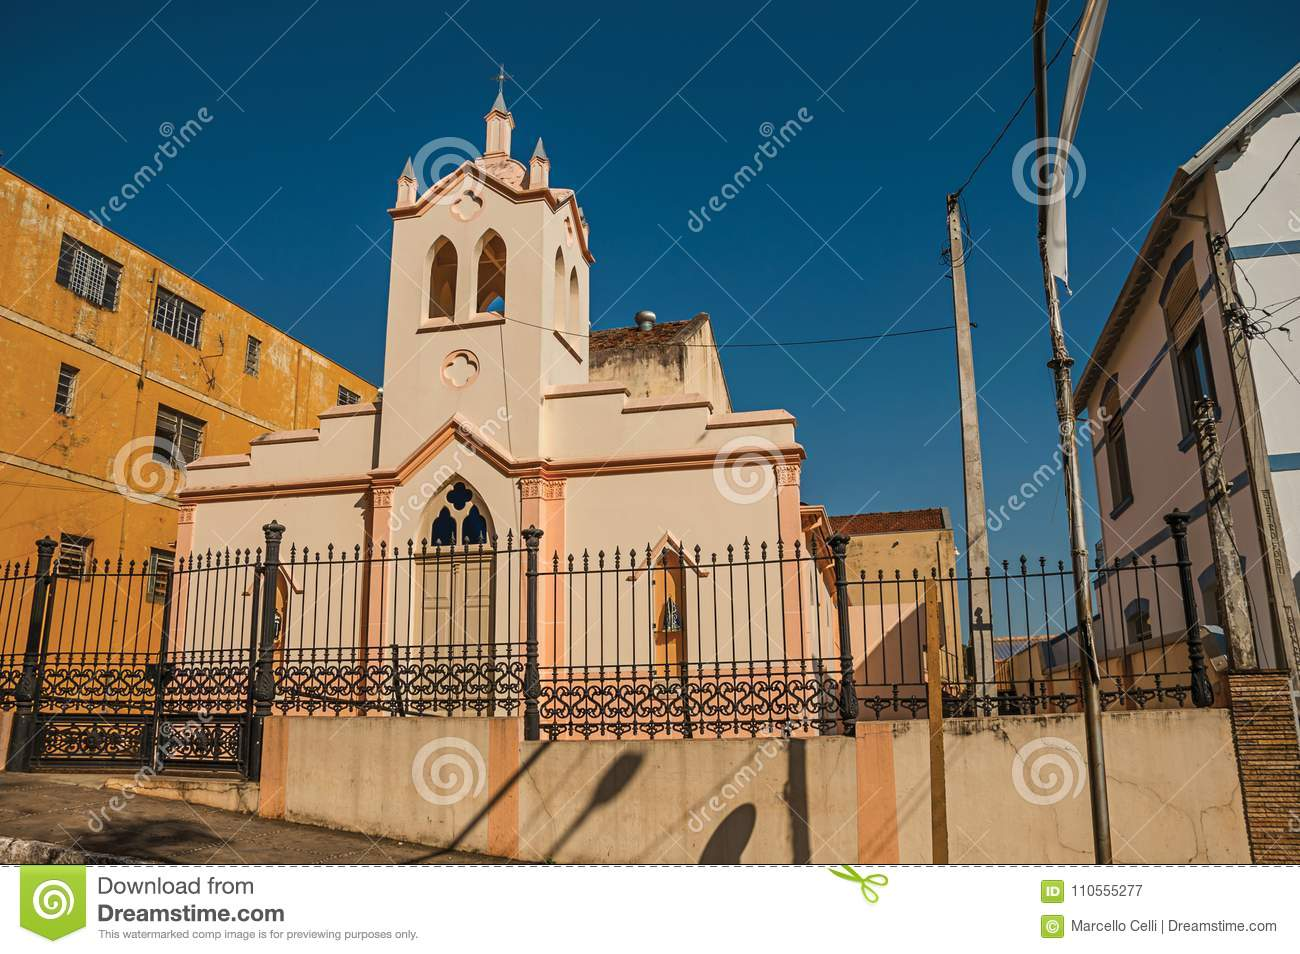 Facade of small church and belfry behind iron fence, in a sunny day at São Manuel.